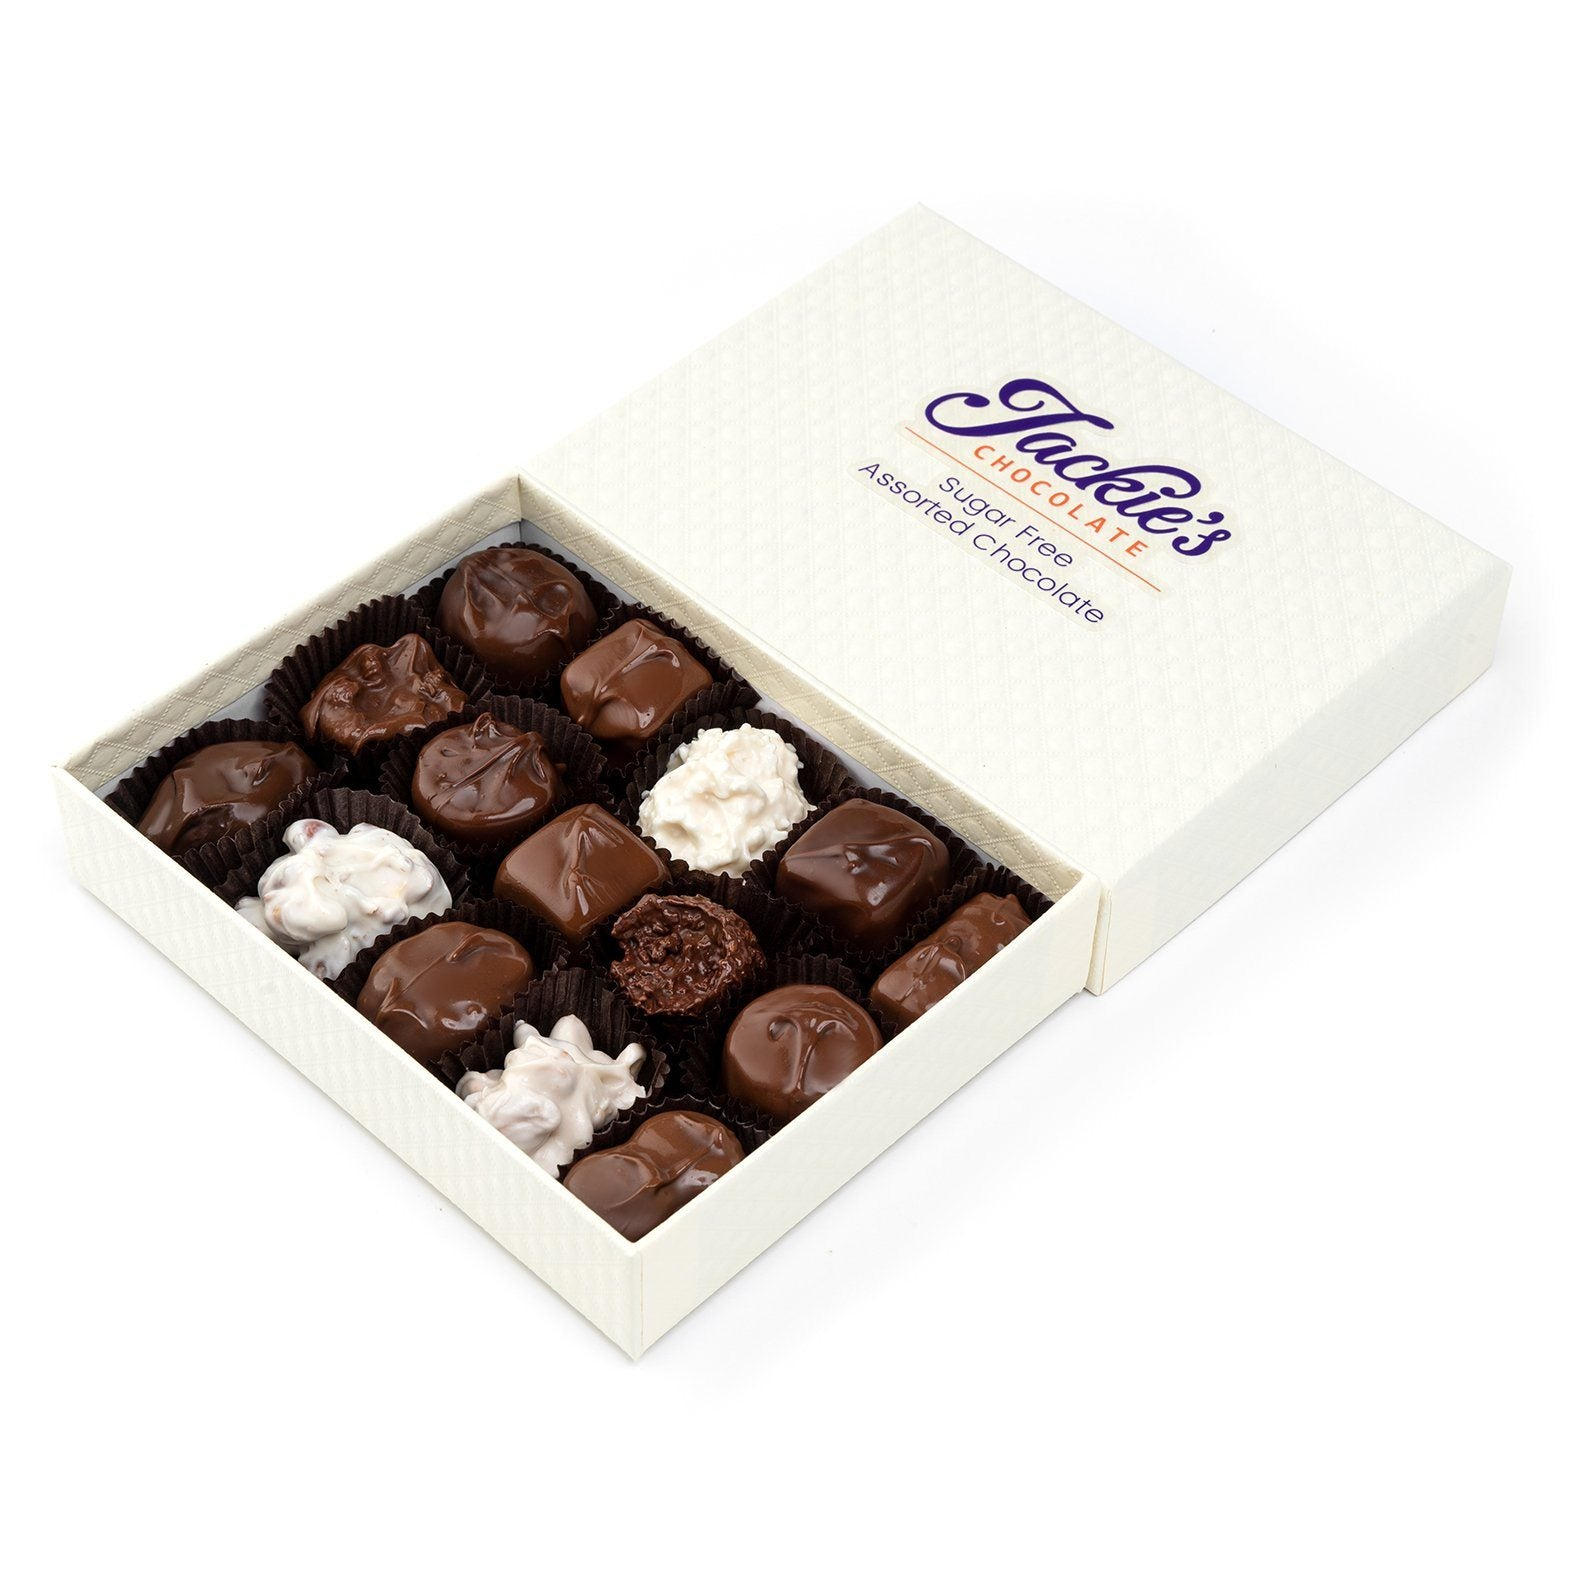 Sugar Free Chocolate Assortment (506378977315)